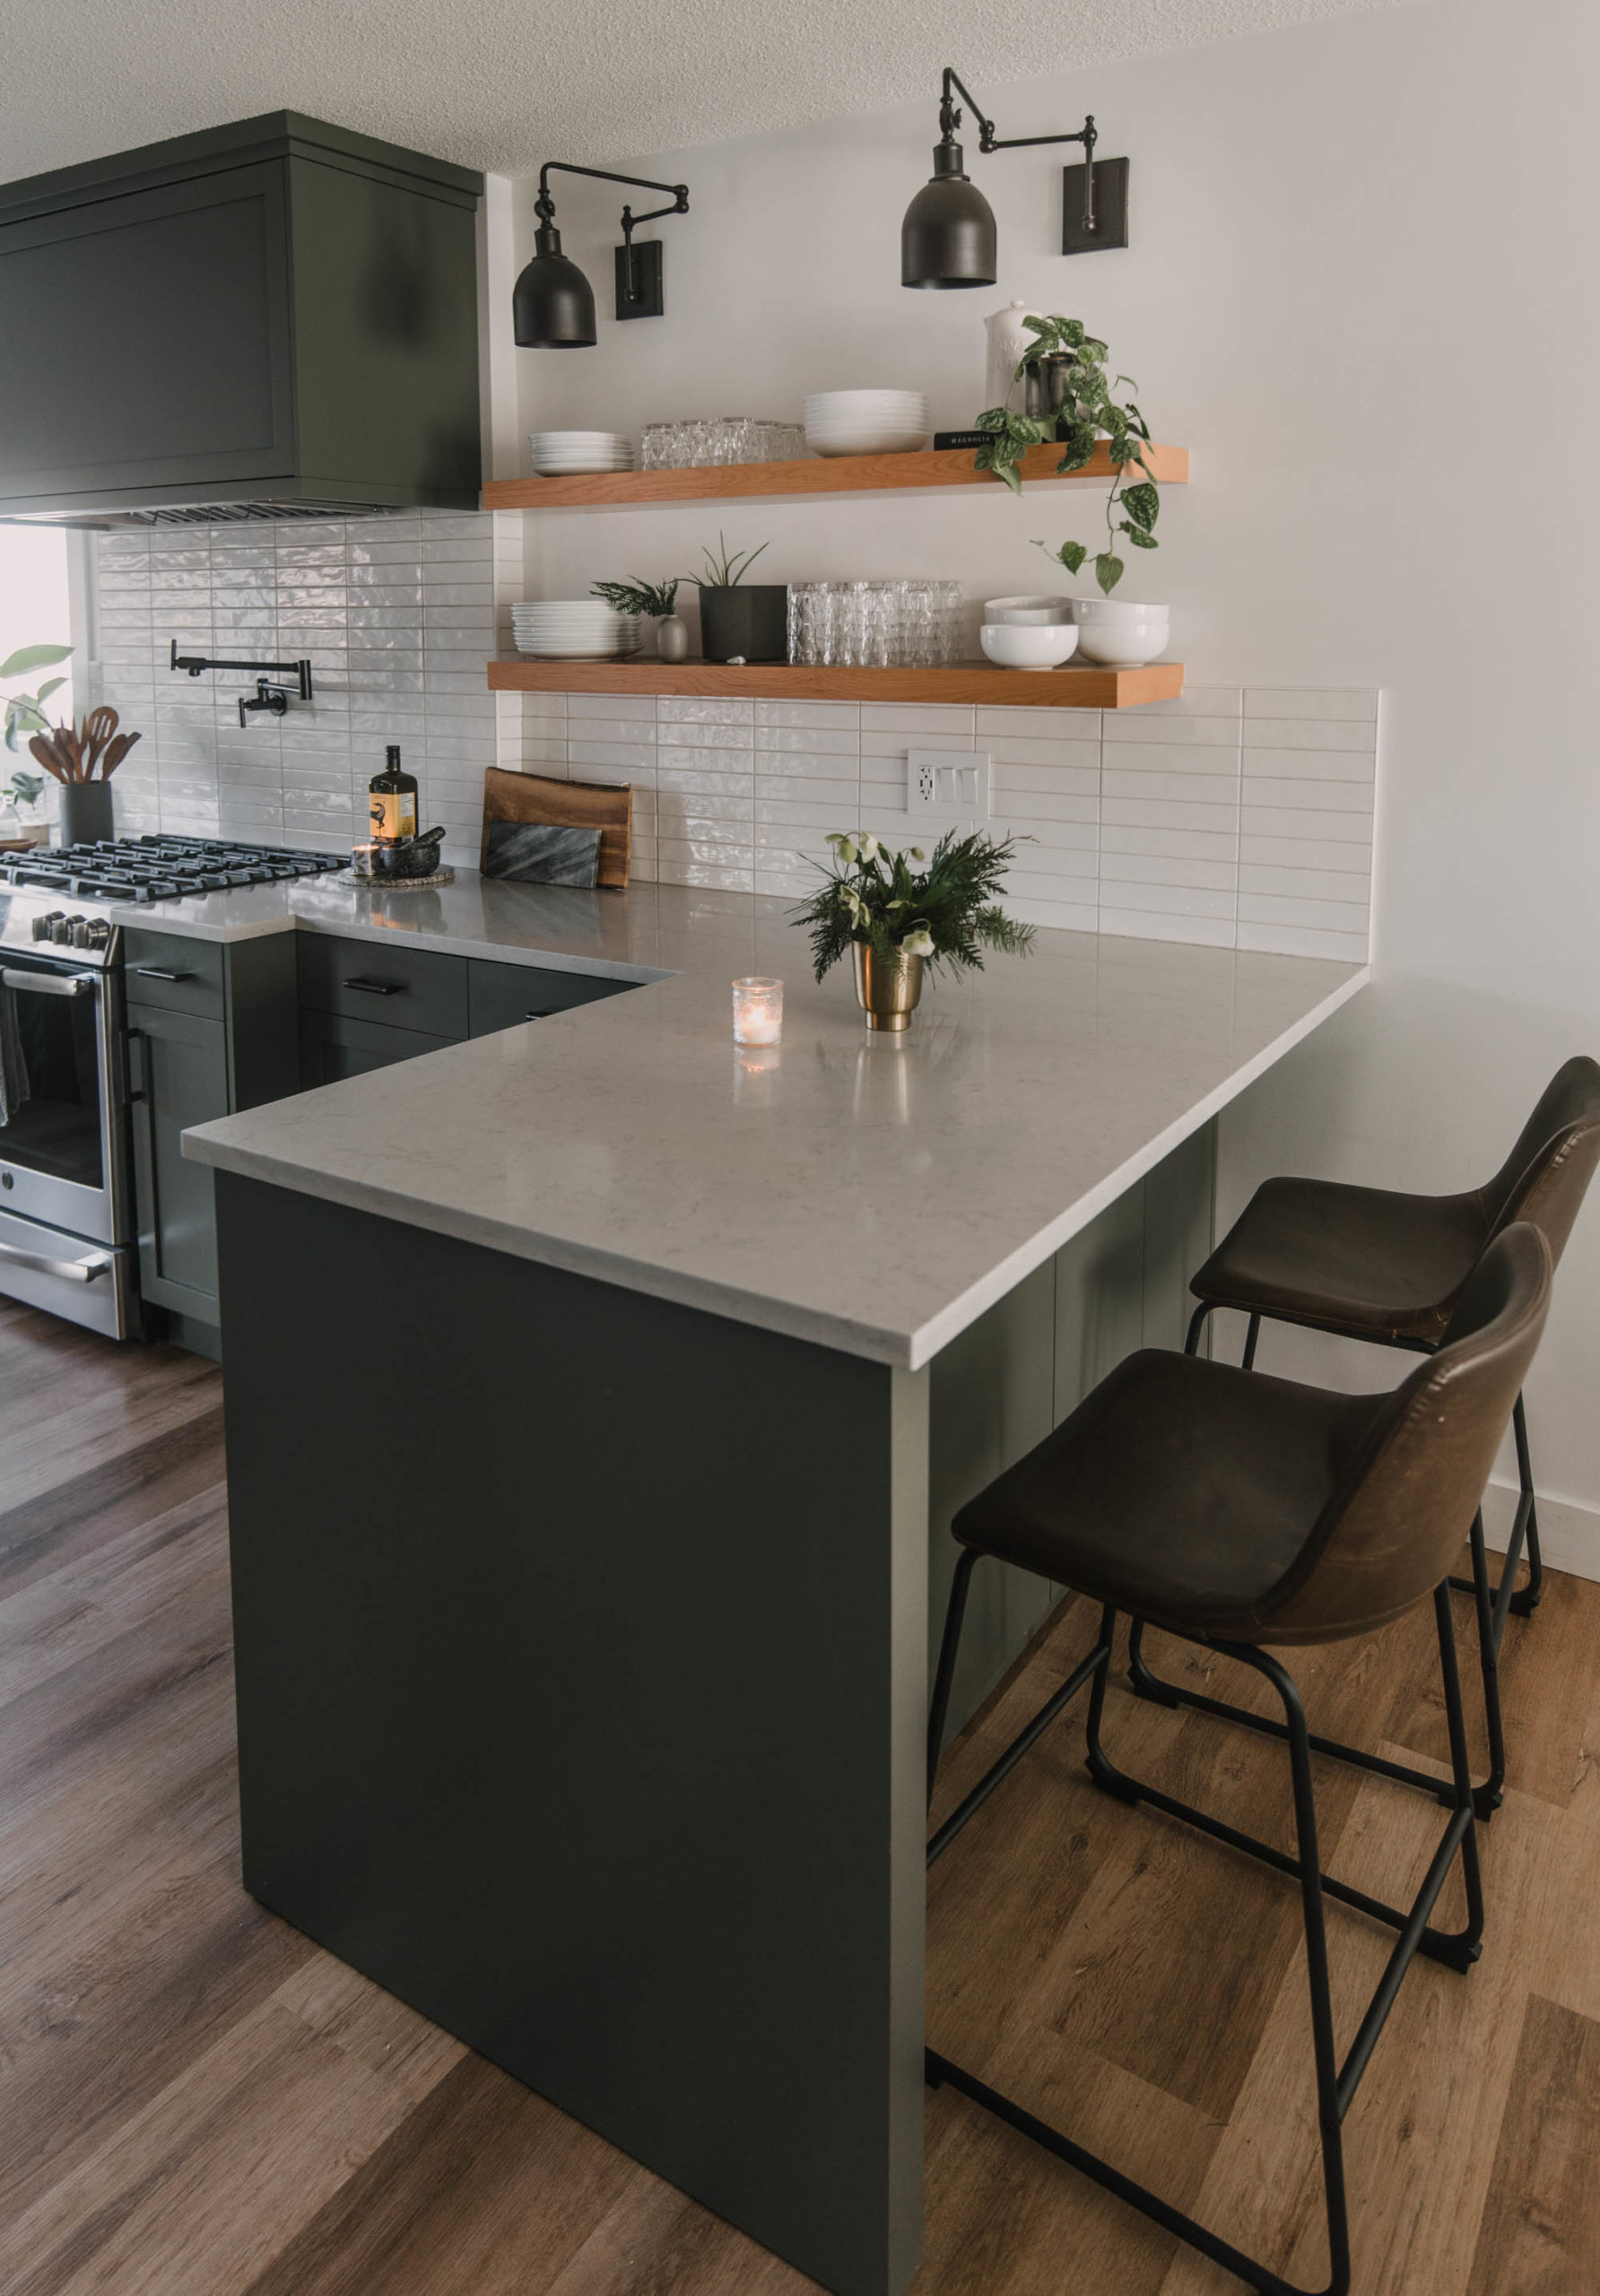 Simple Holiday Decor in a Green Kitchen